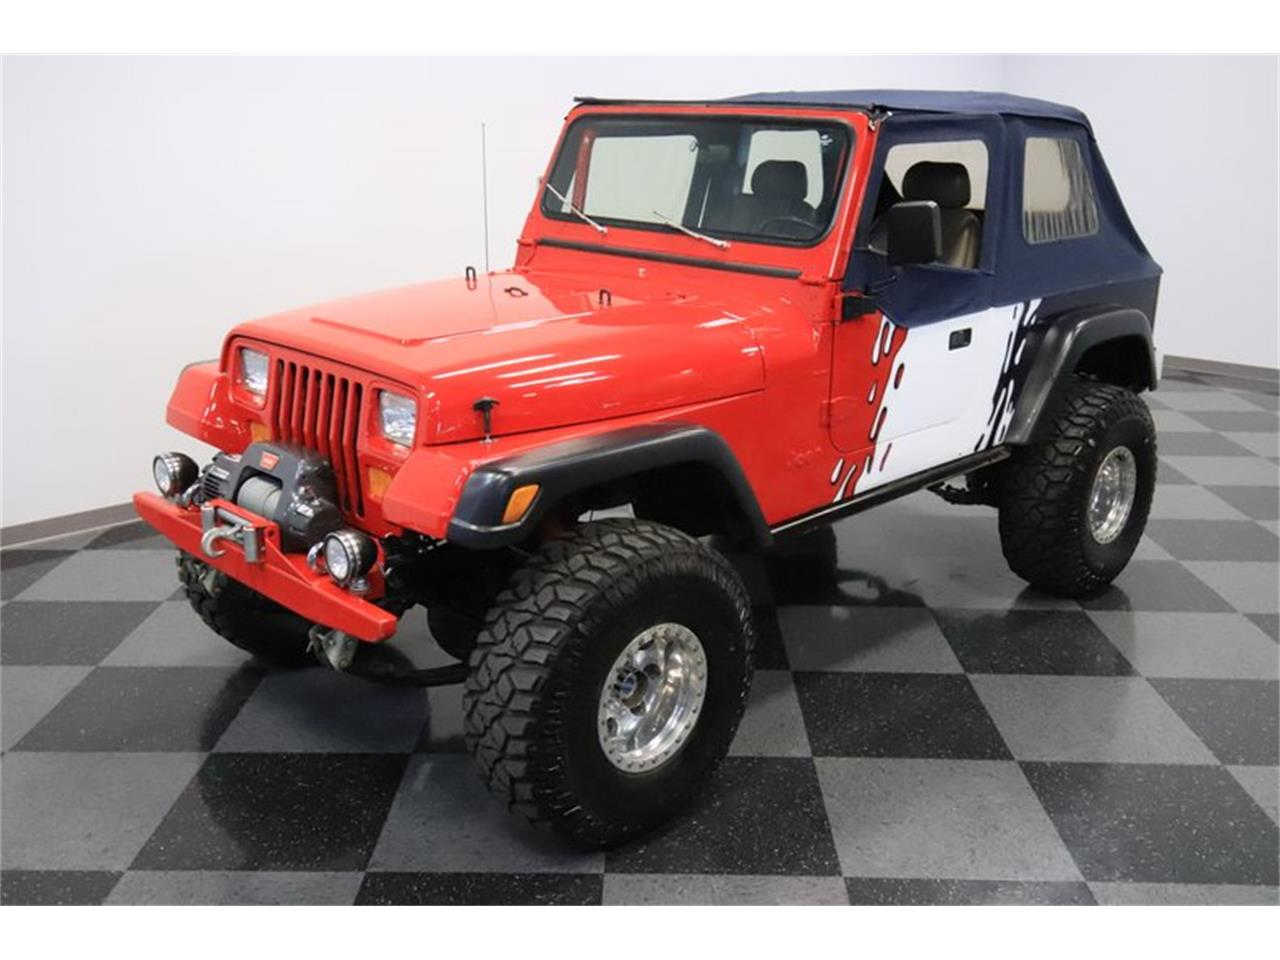 Large Picture of 1983 CJ8 Scrambler - $36,995.00 - Q5HM